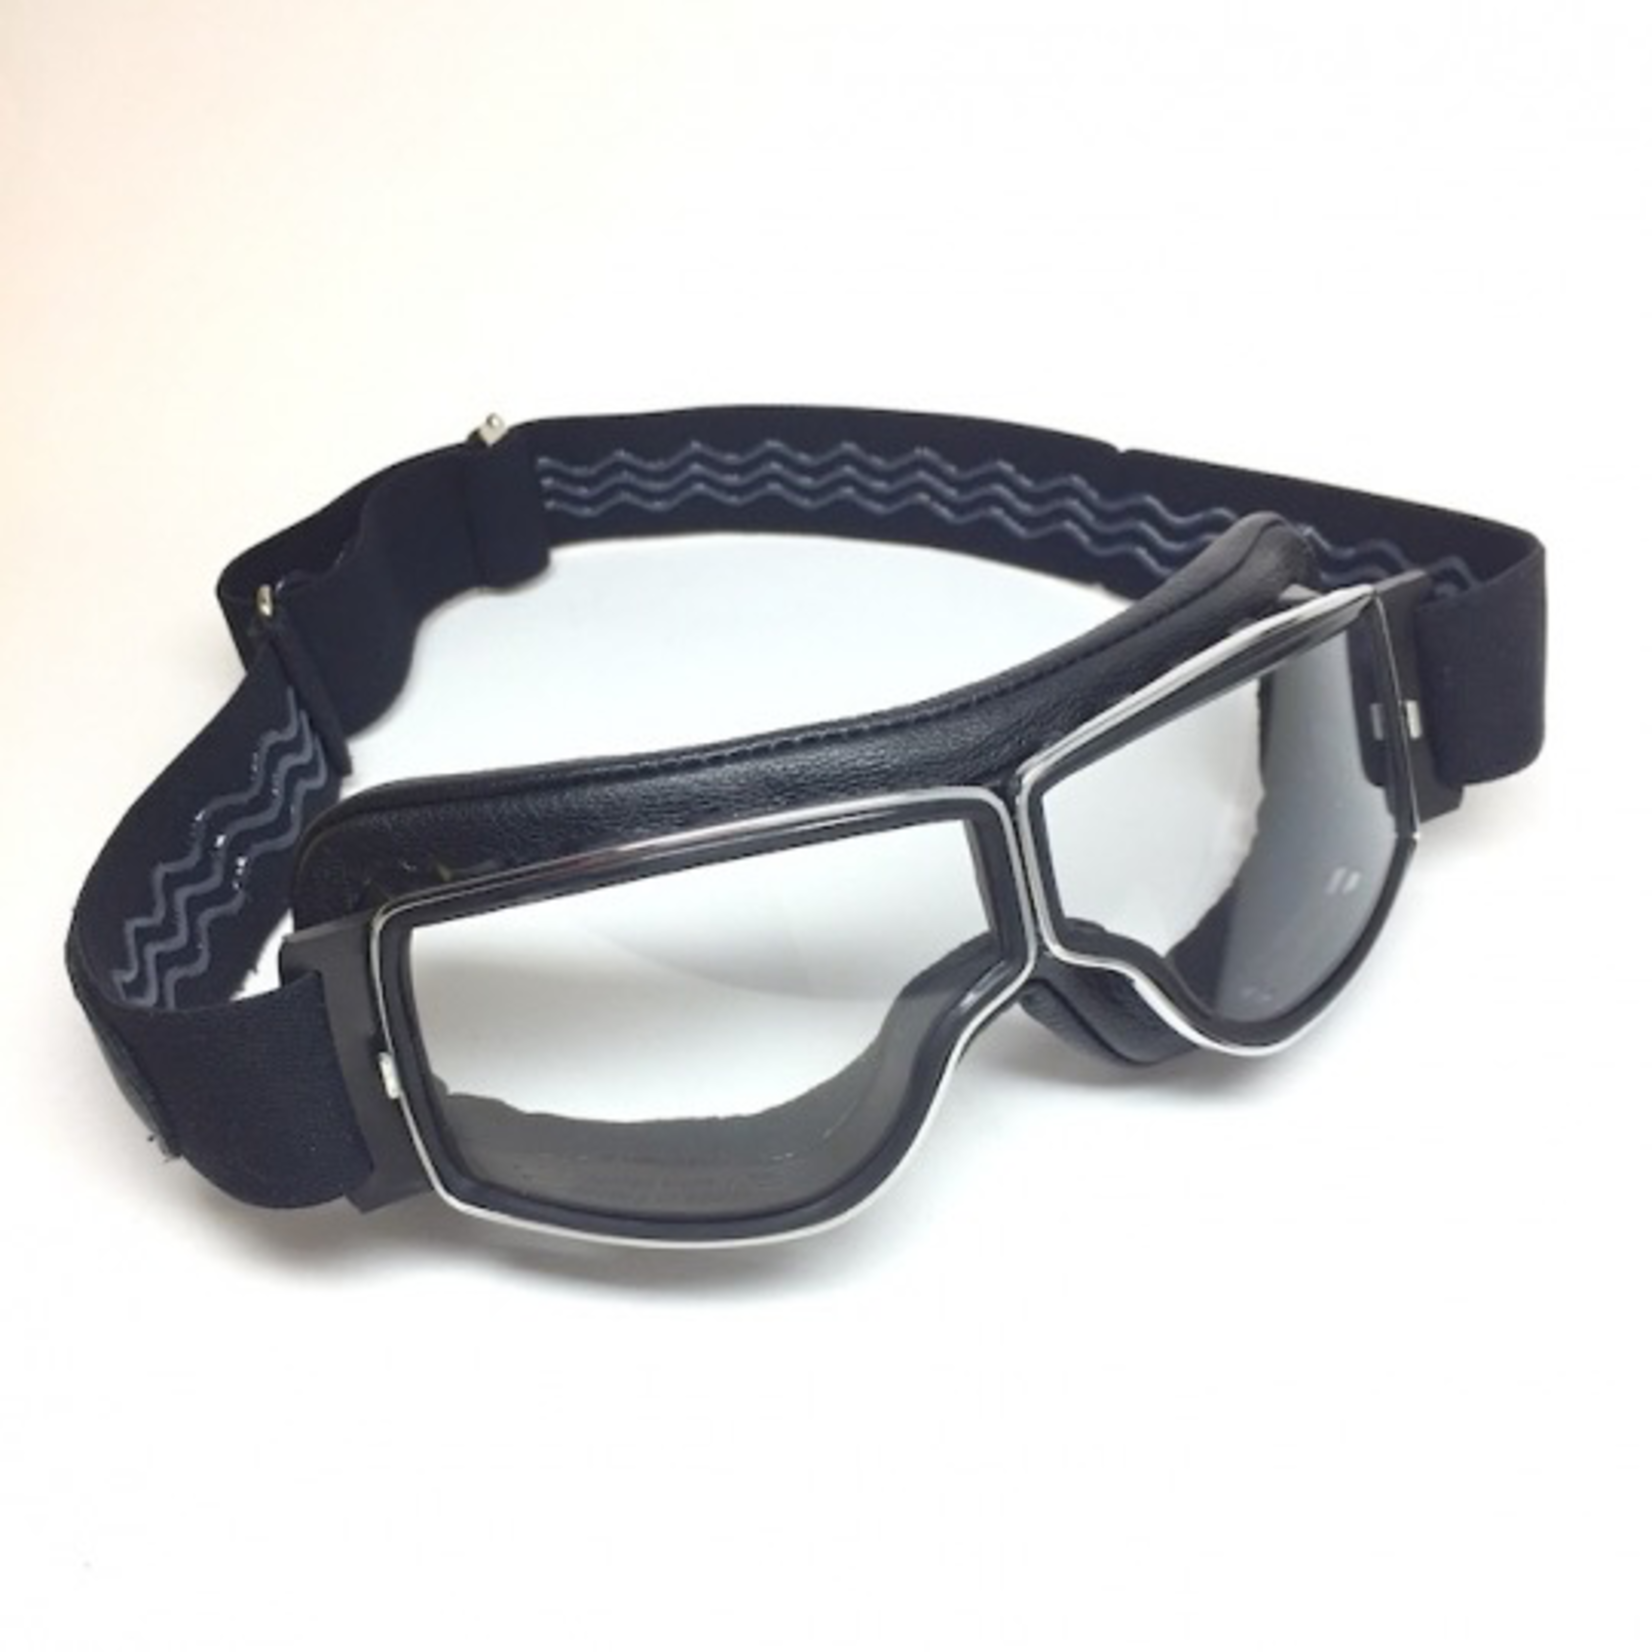 Lifestyle Goggles, Aviator T2 Black/Chrome